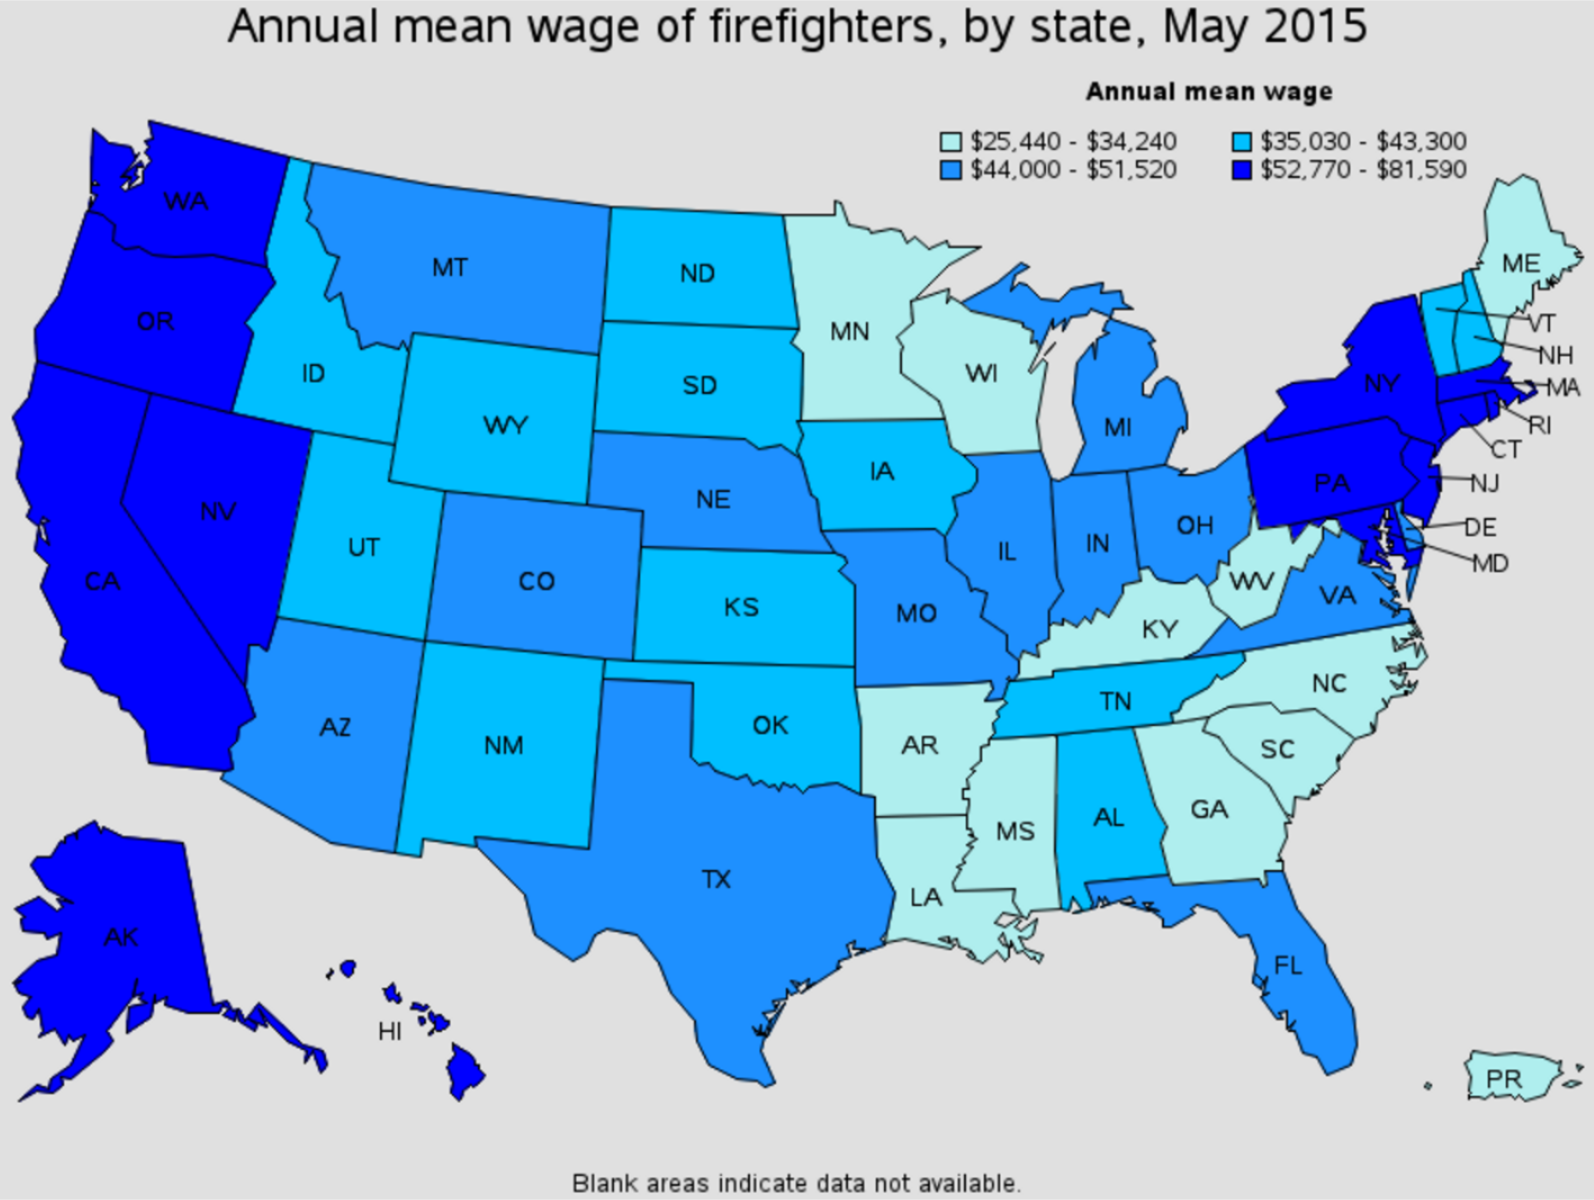 firefighter average salary by state Philadelphia Pennsylvania